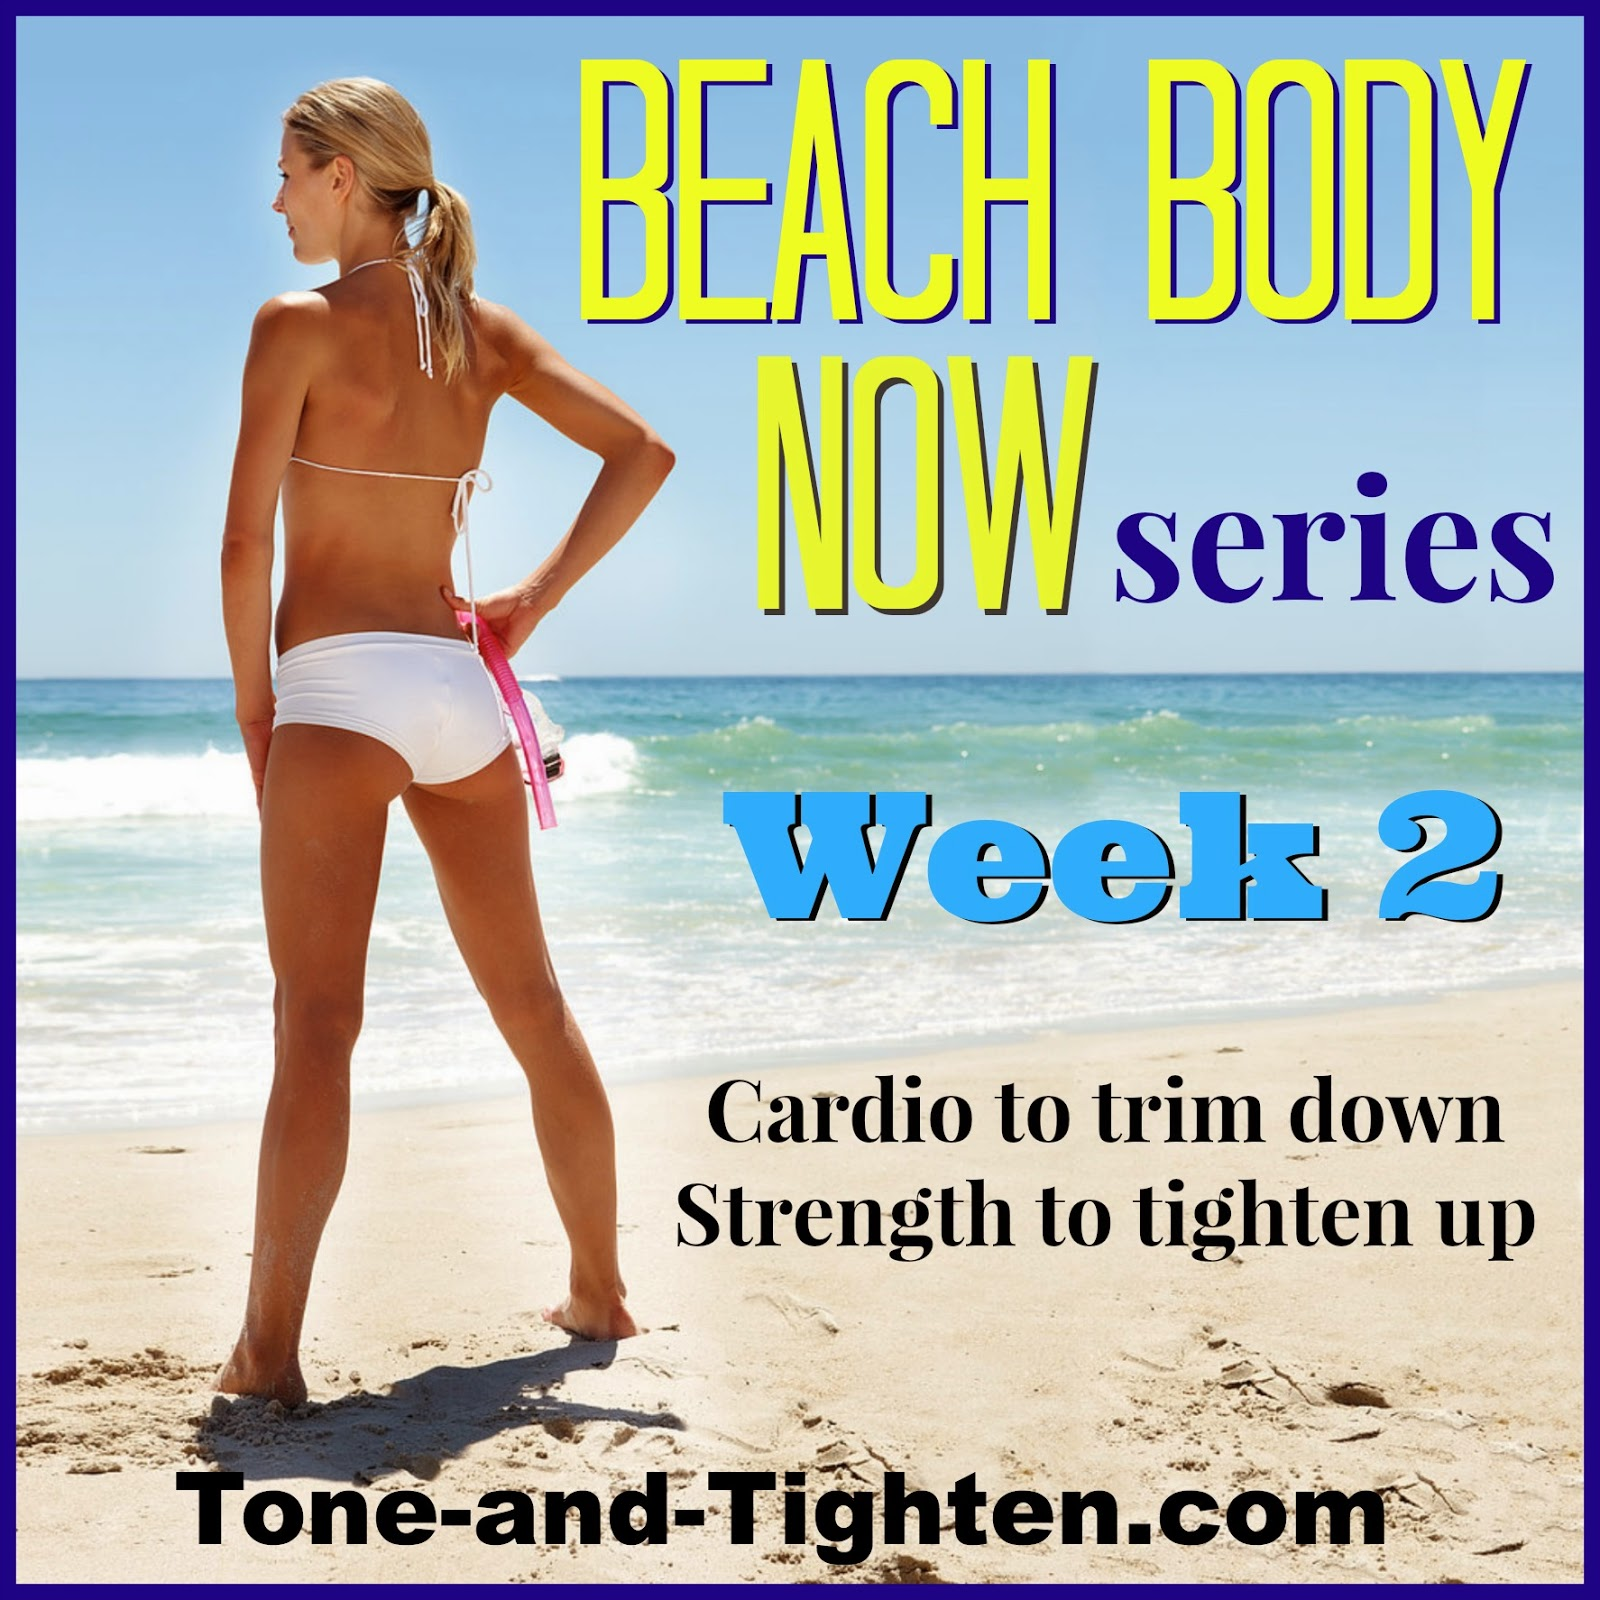 https://tone-and-tighten.com/2014/04/beach-body-now-week-2-workout-series-to-get-you-beach-ready.html